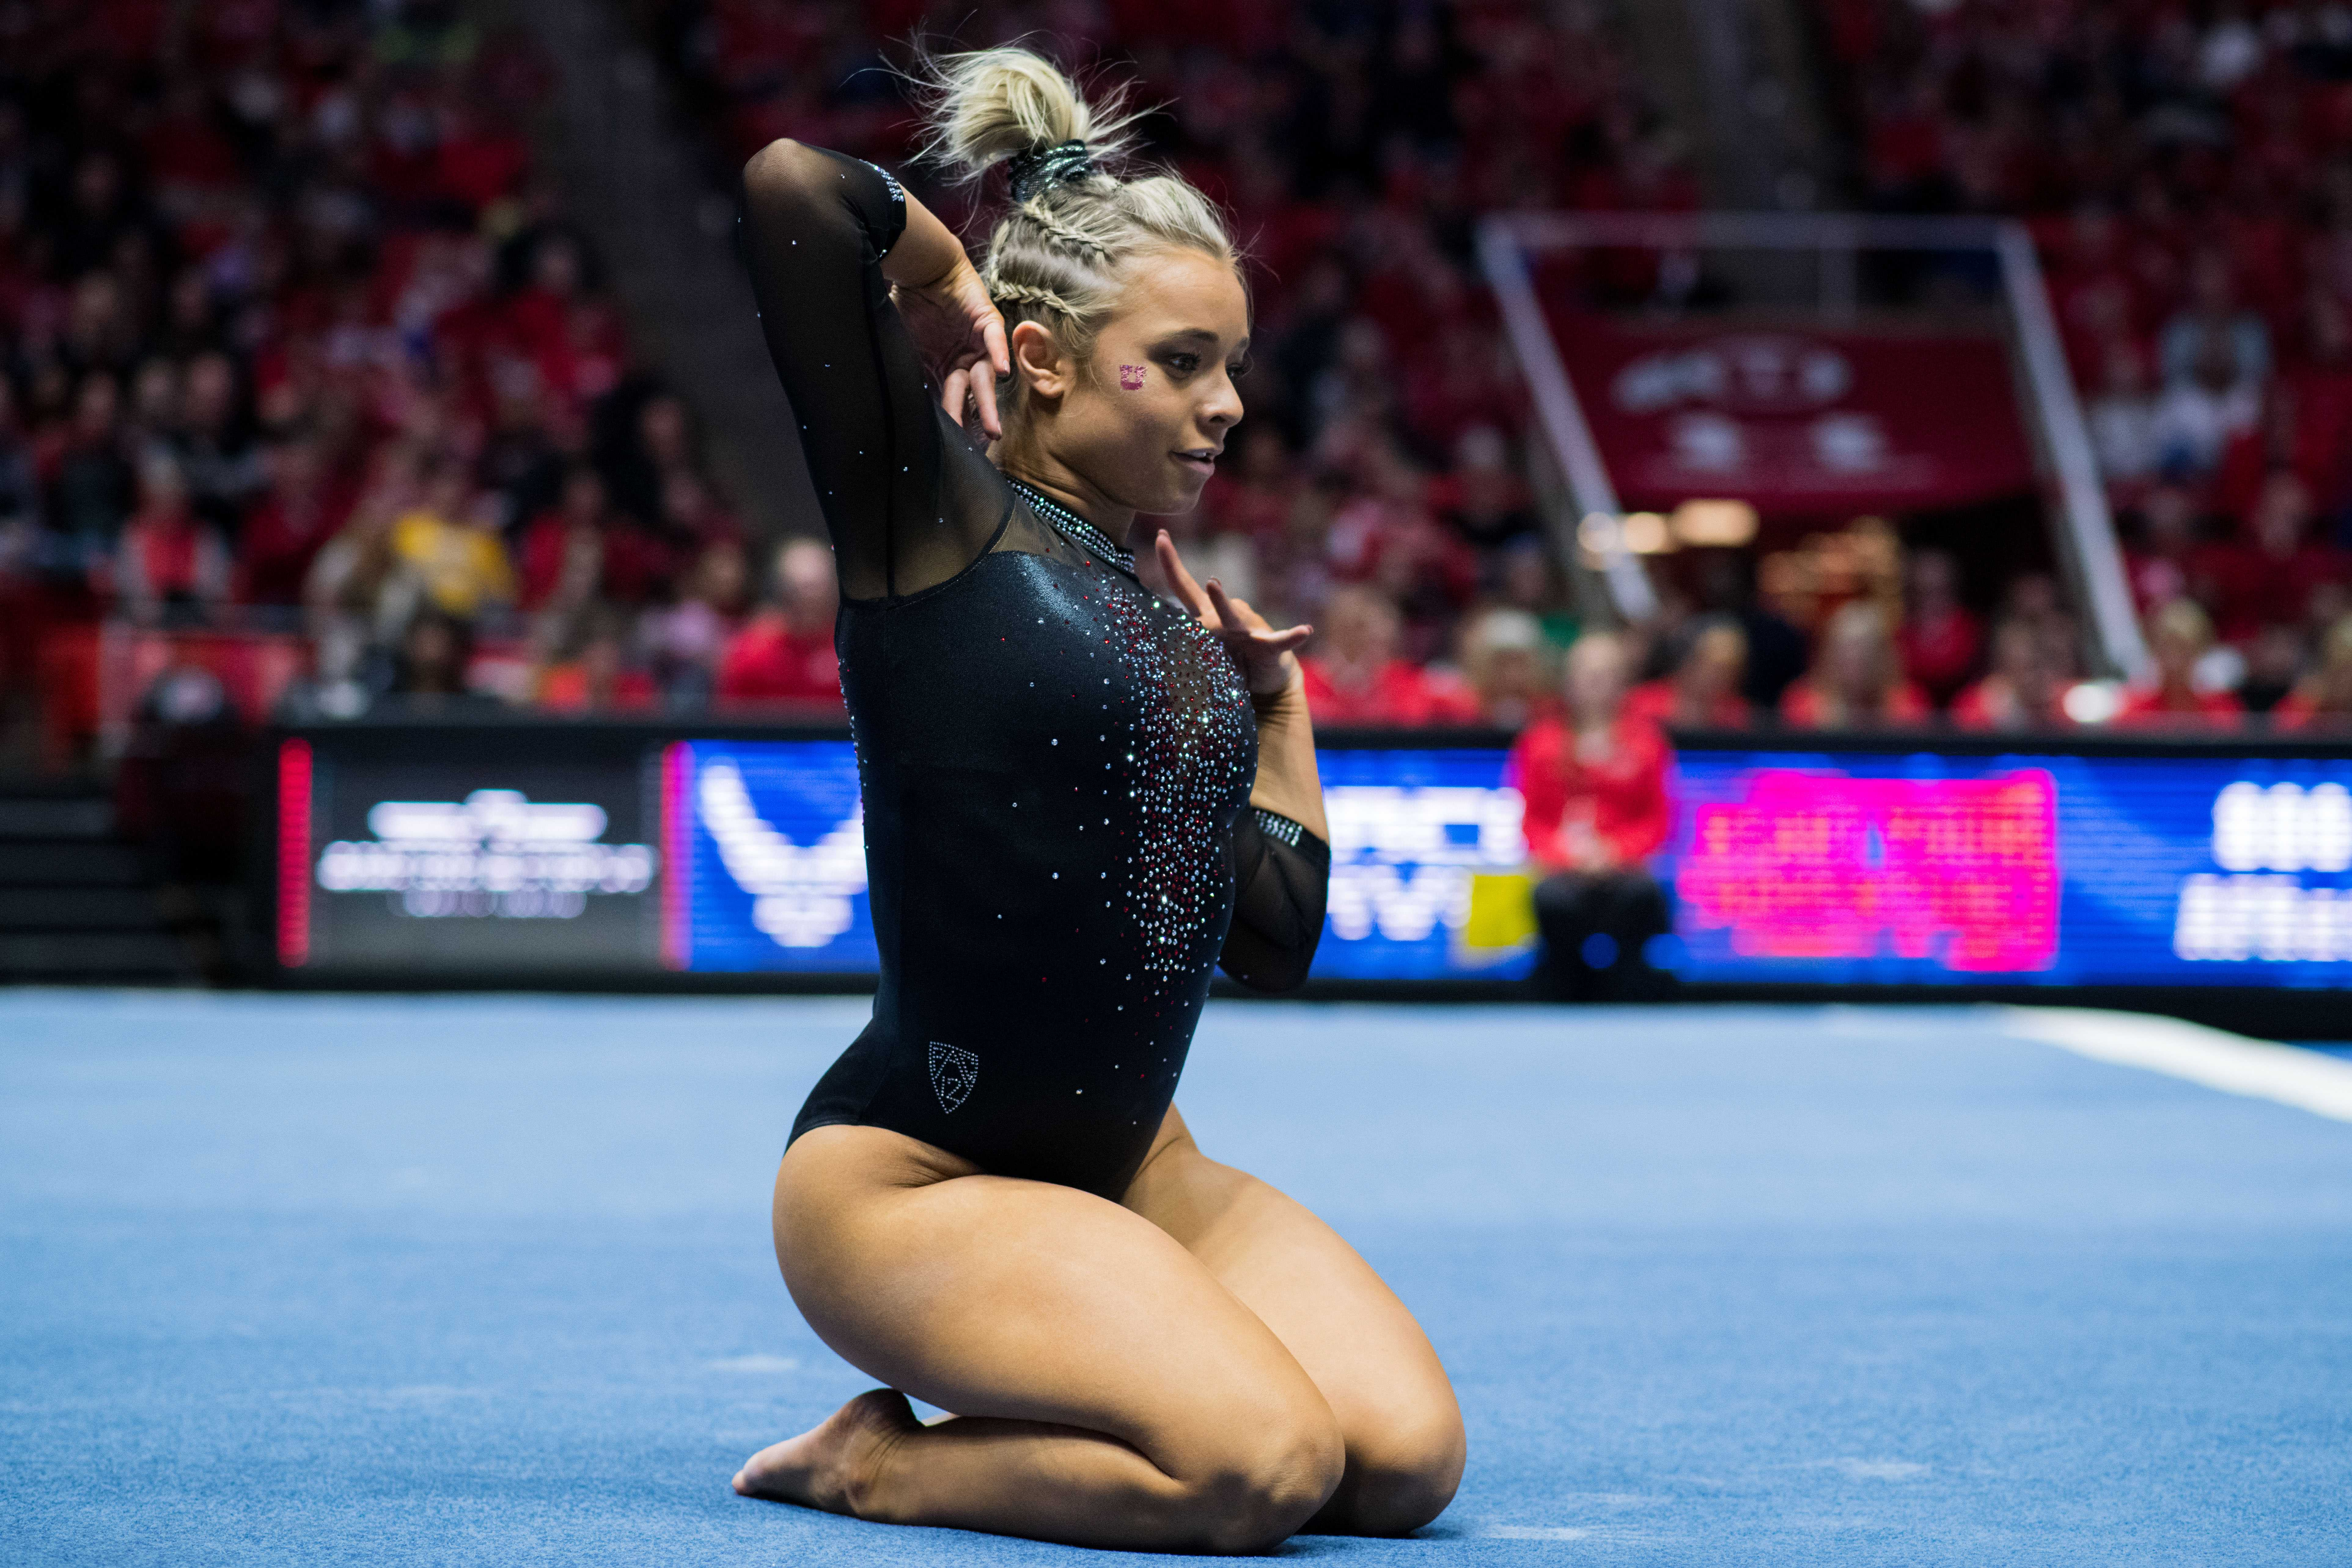 University of Utah sophomore Sydney Soloski performed her floor routine in an NCAA Women's Gymnastics meet vs. UCLA at Jon M. Huntsman Center in Salt Lake City, UT on Saturday February 23, 2019.  (Photo by Curtis Lin | Daily Utah Chronicle)